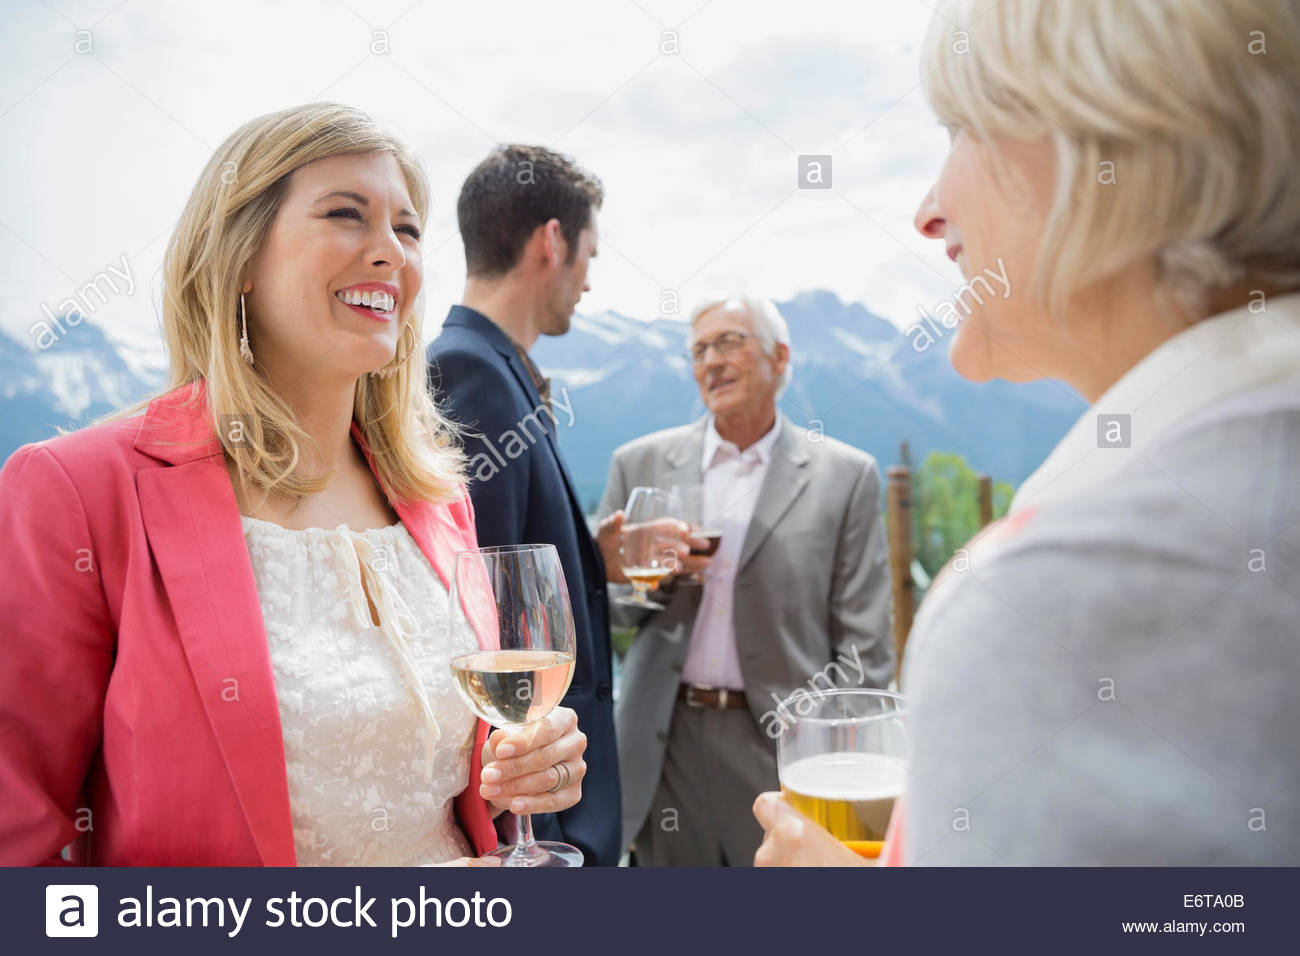 Business people talking at networking event Photo Stock